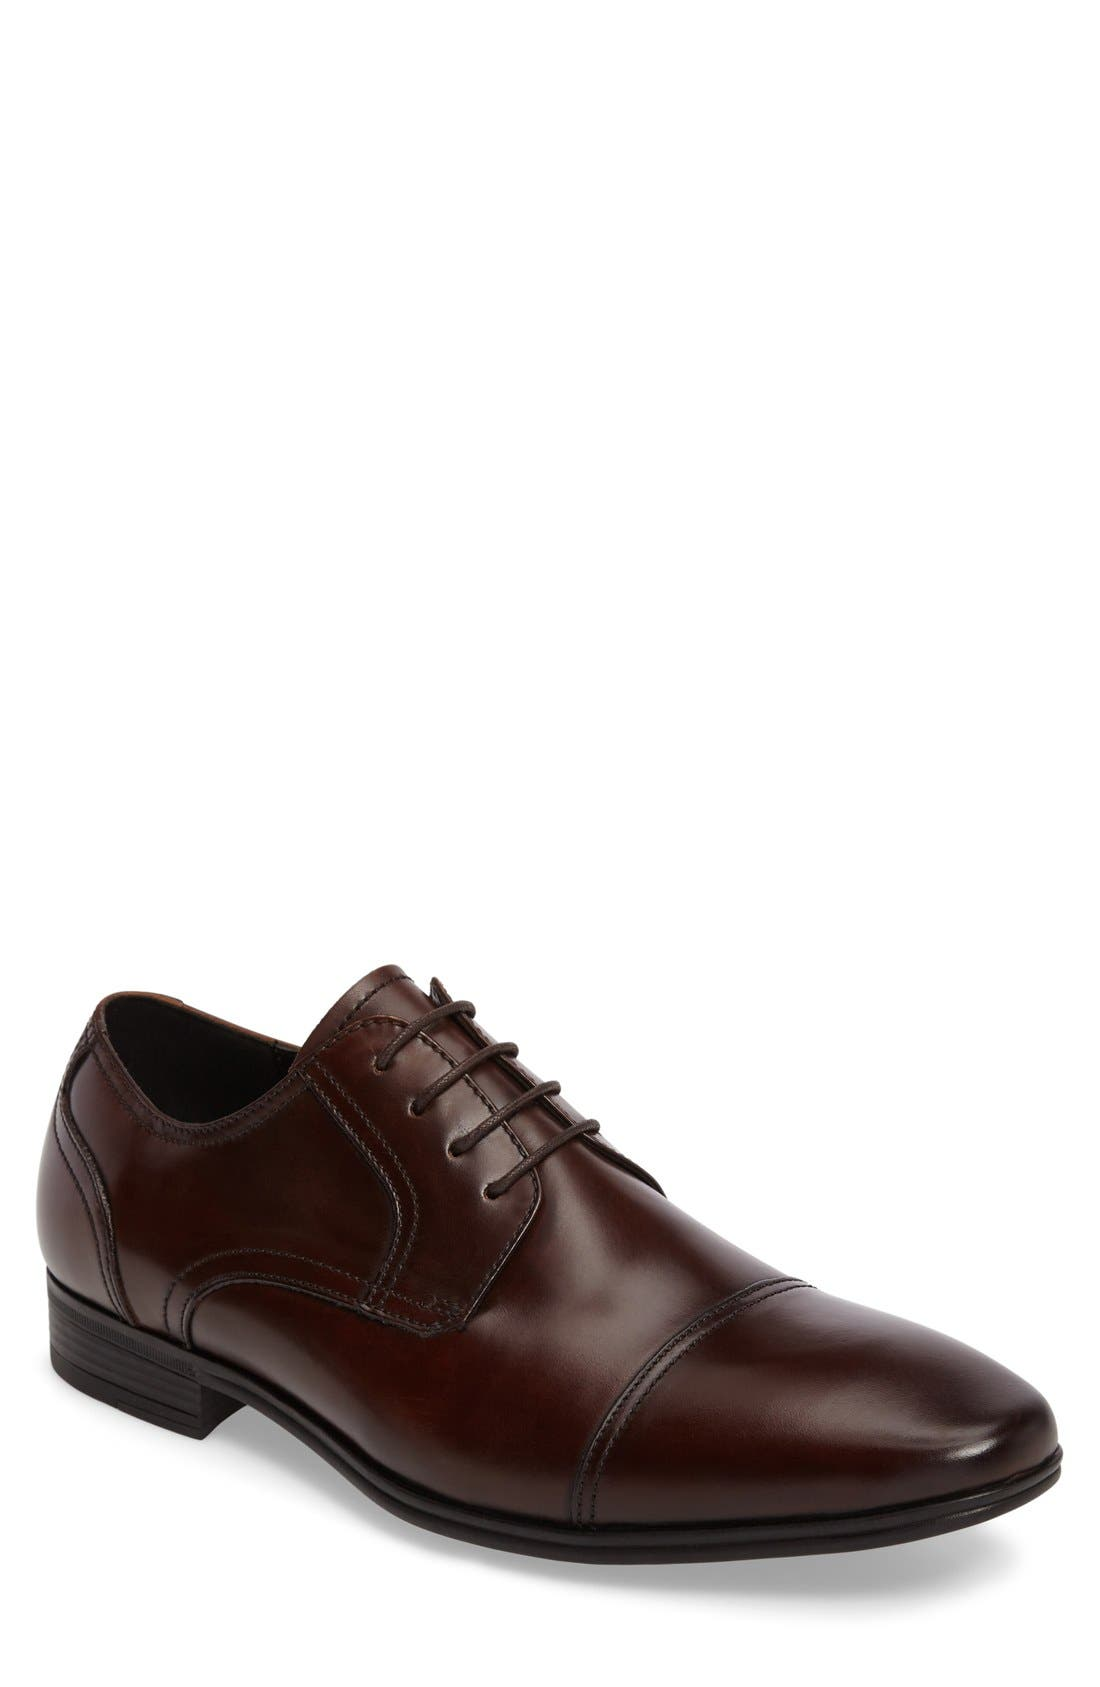 Main Image - Reaction Kenneth Cole In a Min-ute Oxford (Men)